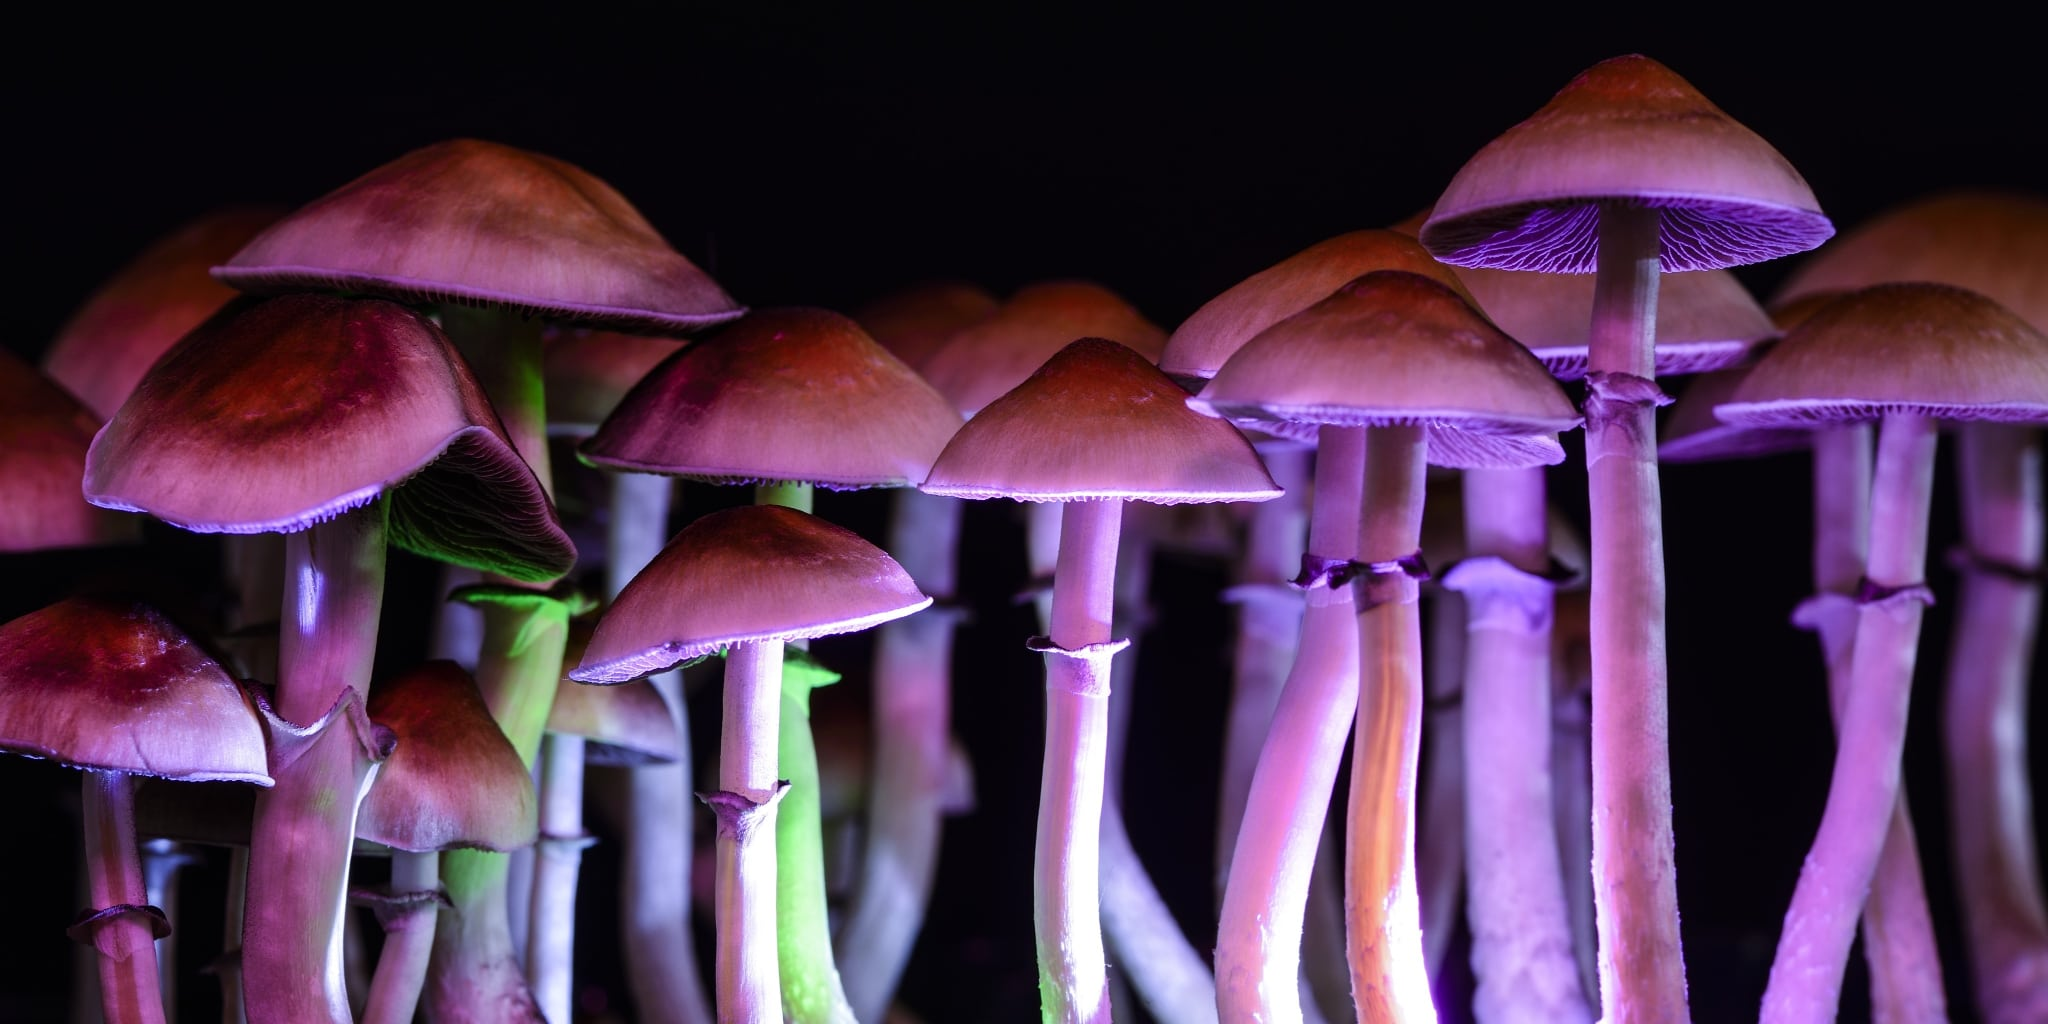 Considering The Positive Uses of Psychedelic Mushrooms